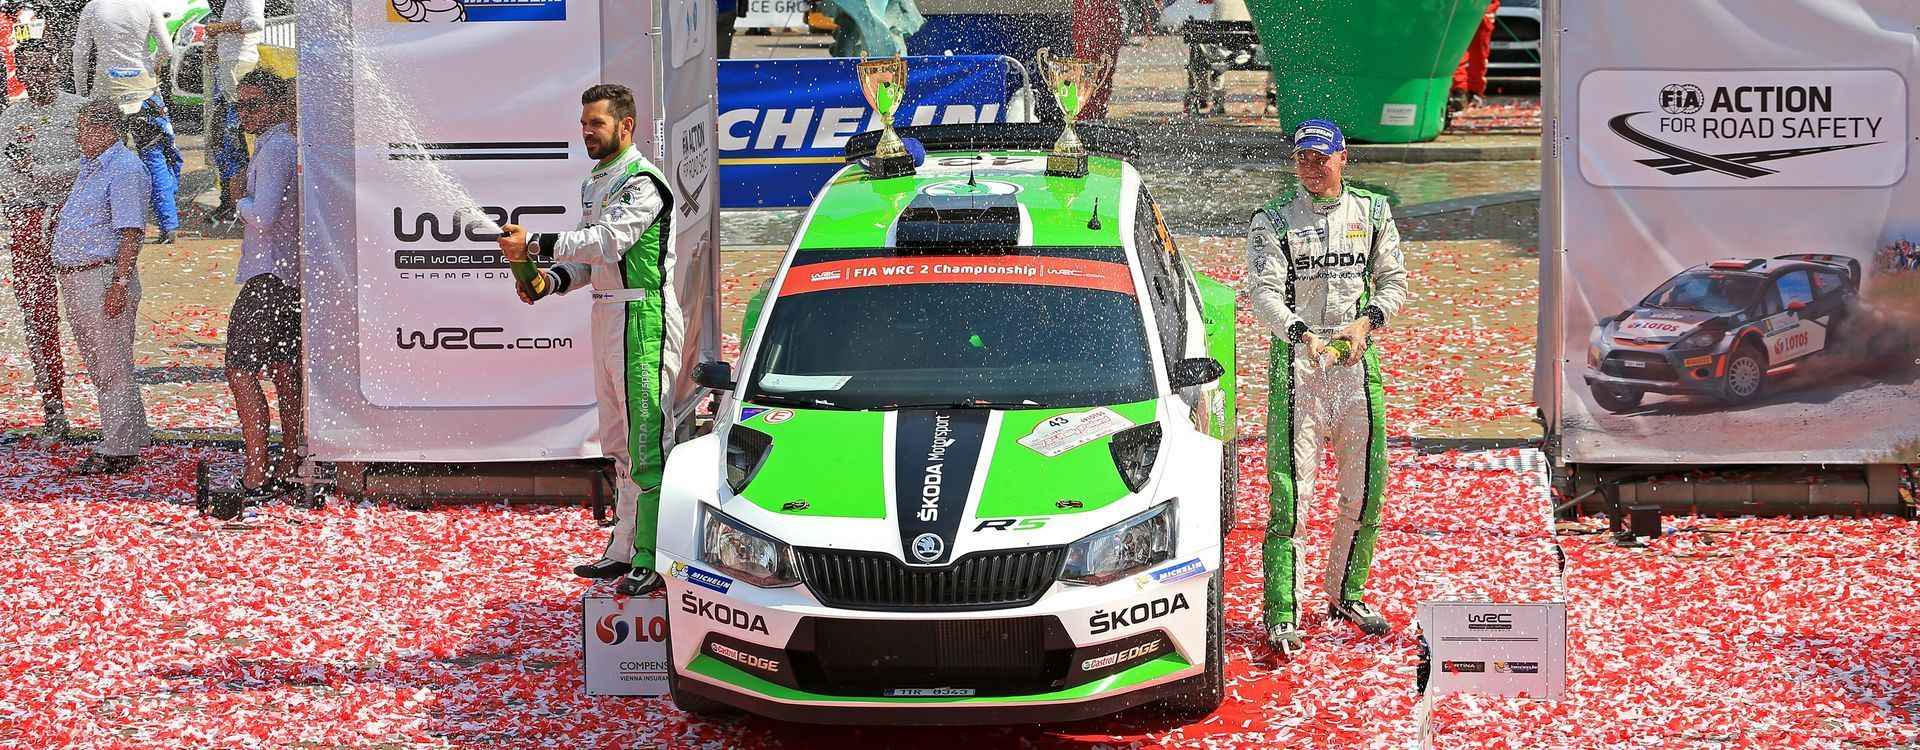 Graceful ride goes on: Lappi won the Rally Poland